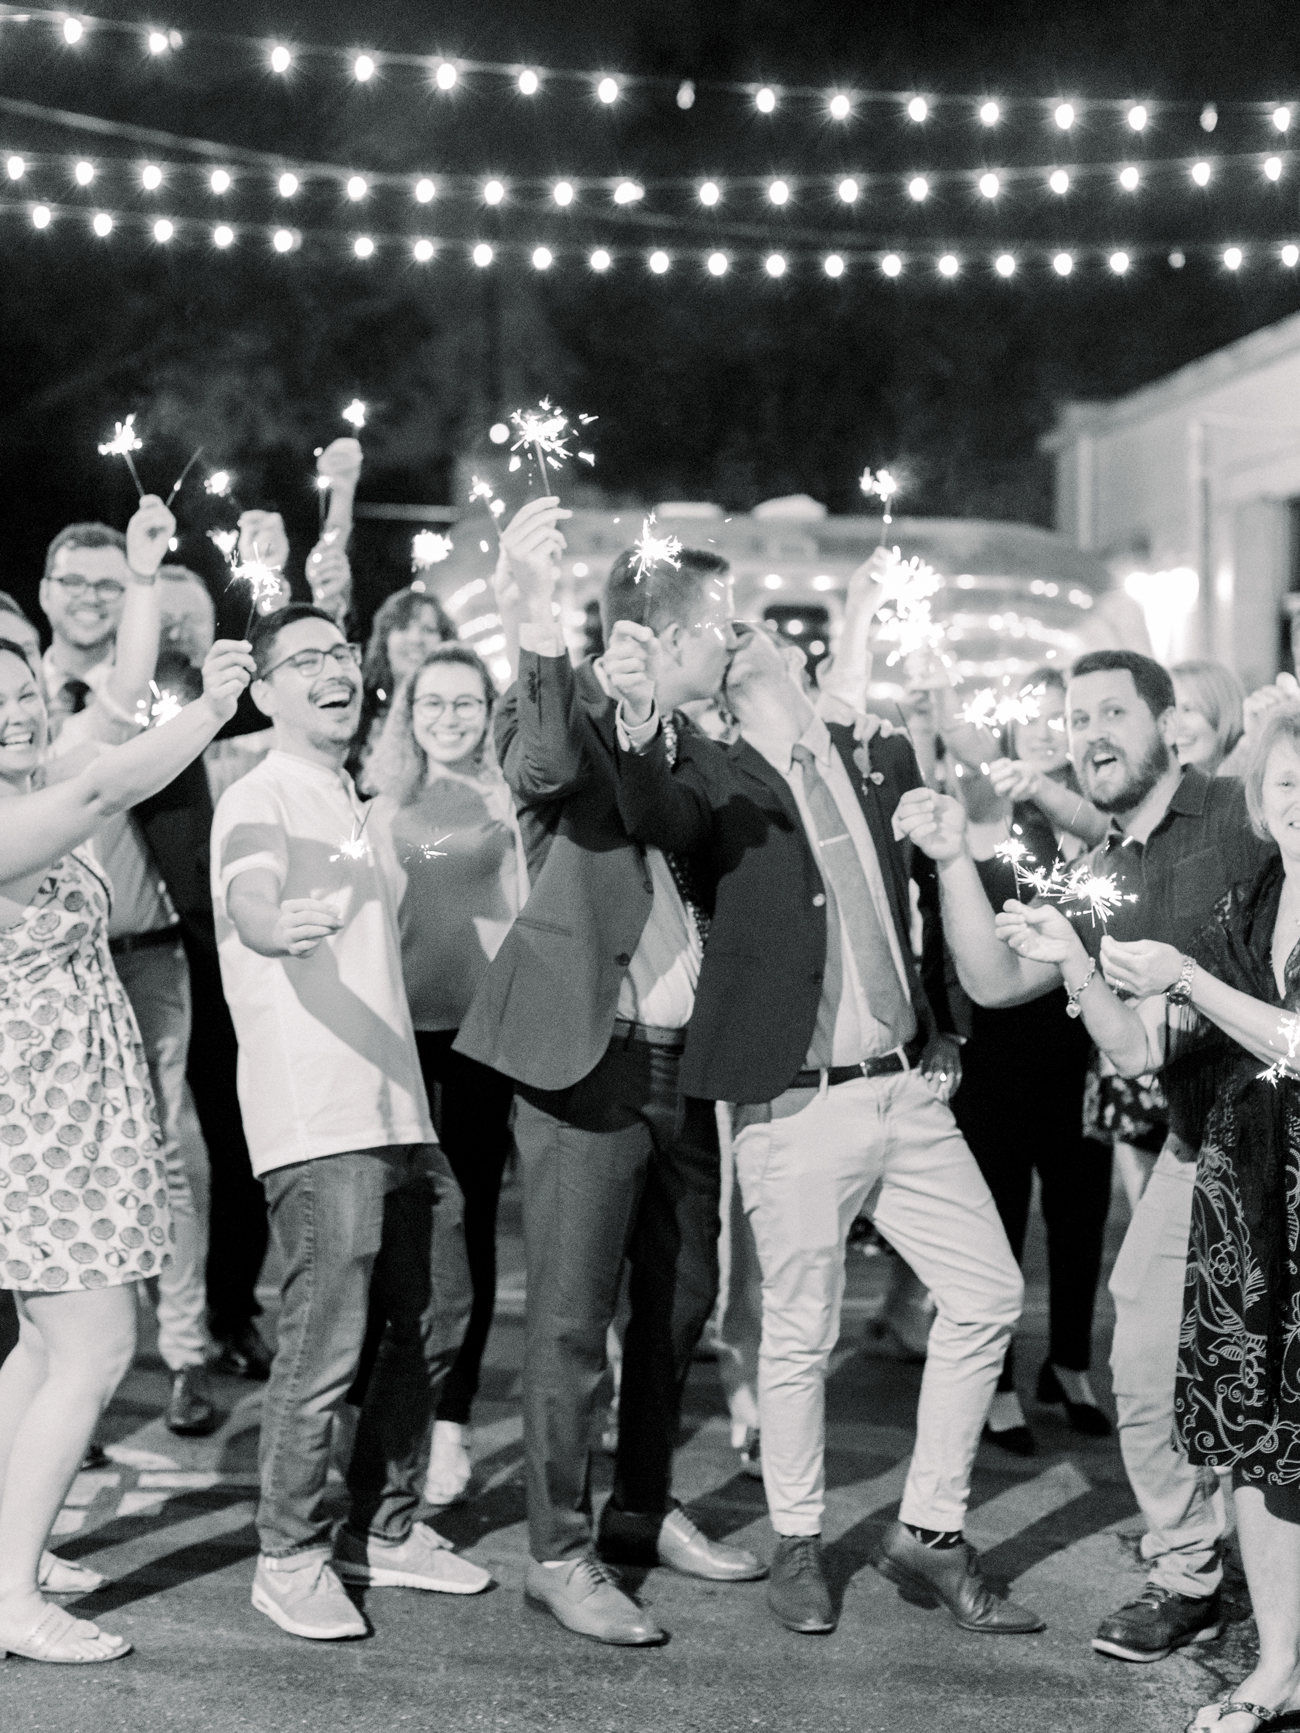 grooms and guests celebrate with sparklers